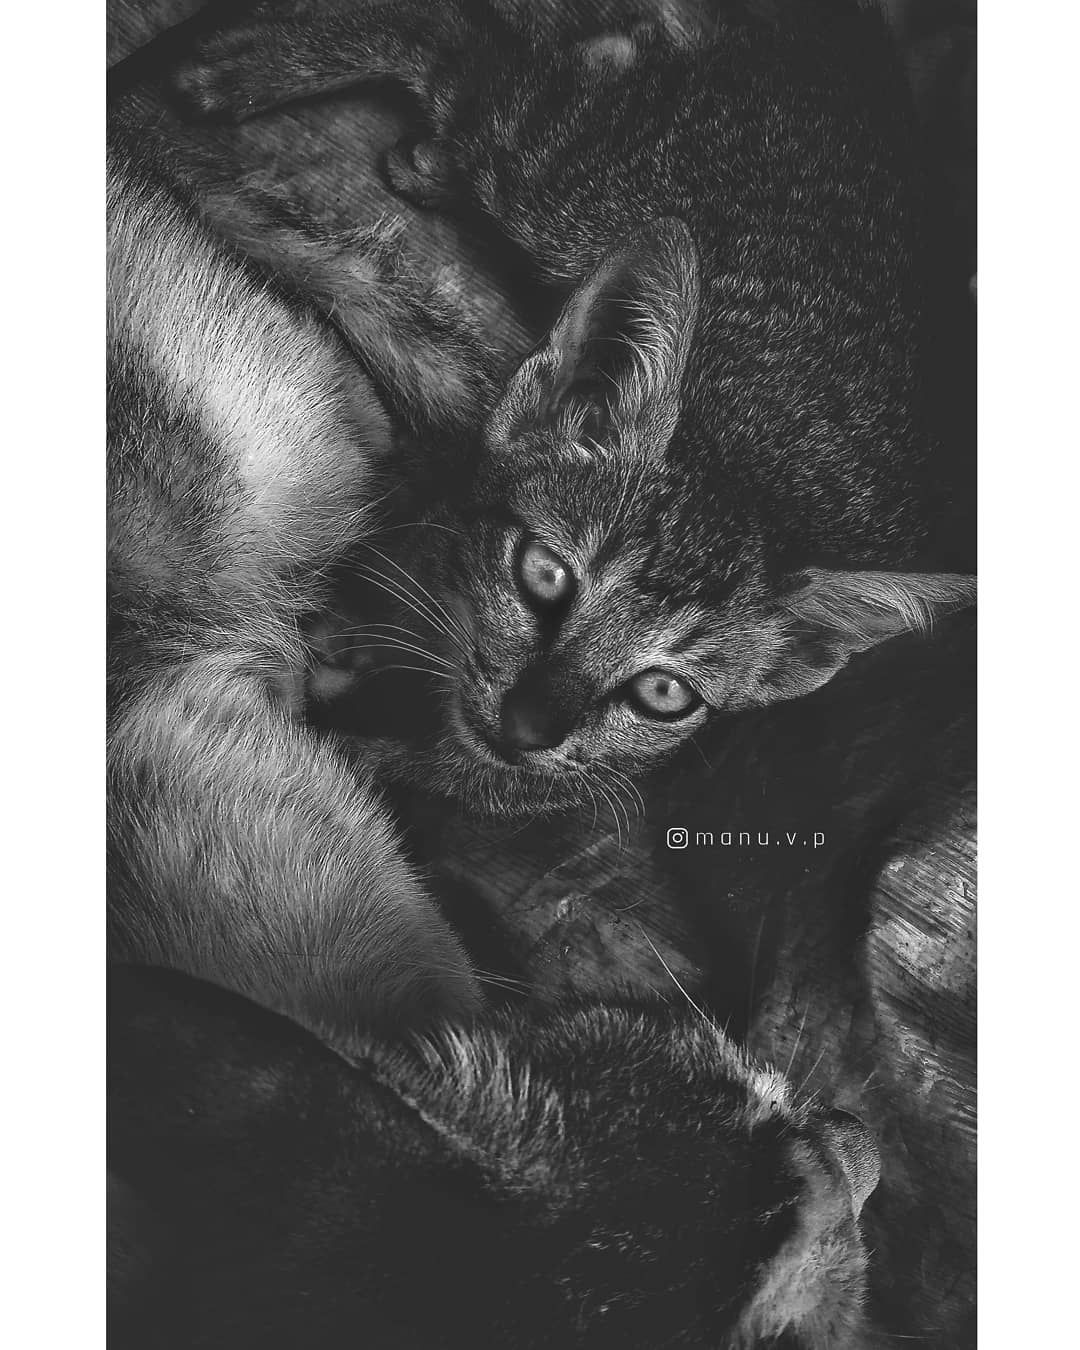 #mobile_photography #redmiindia #mia1photography #moddygrams #lightroomedits #cats_of_instagram